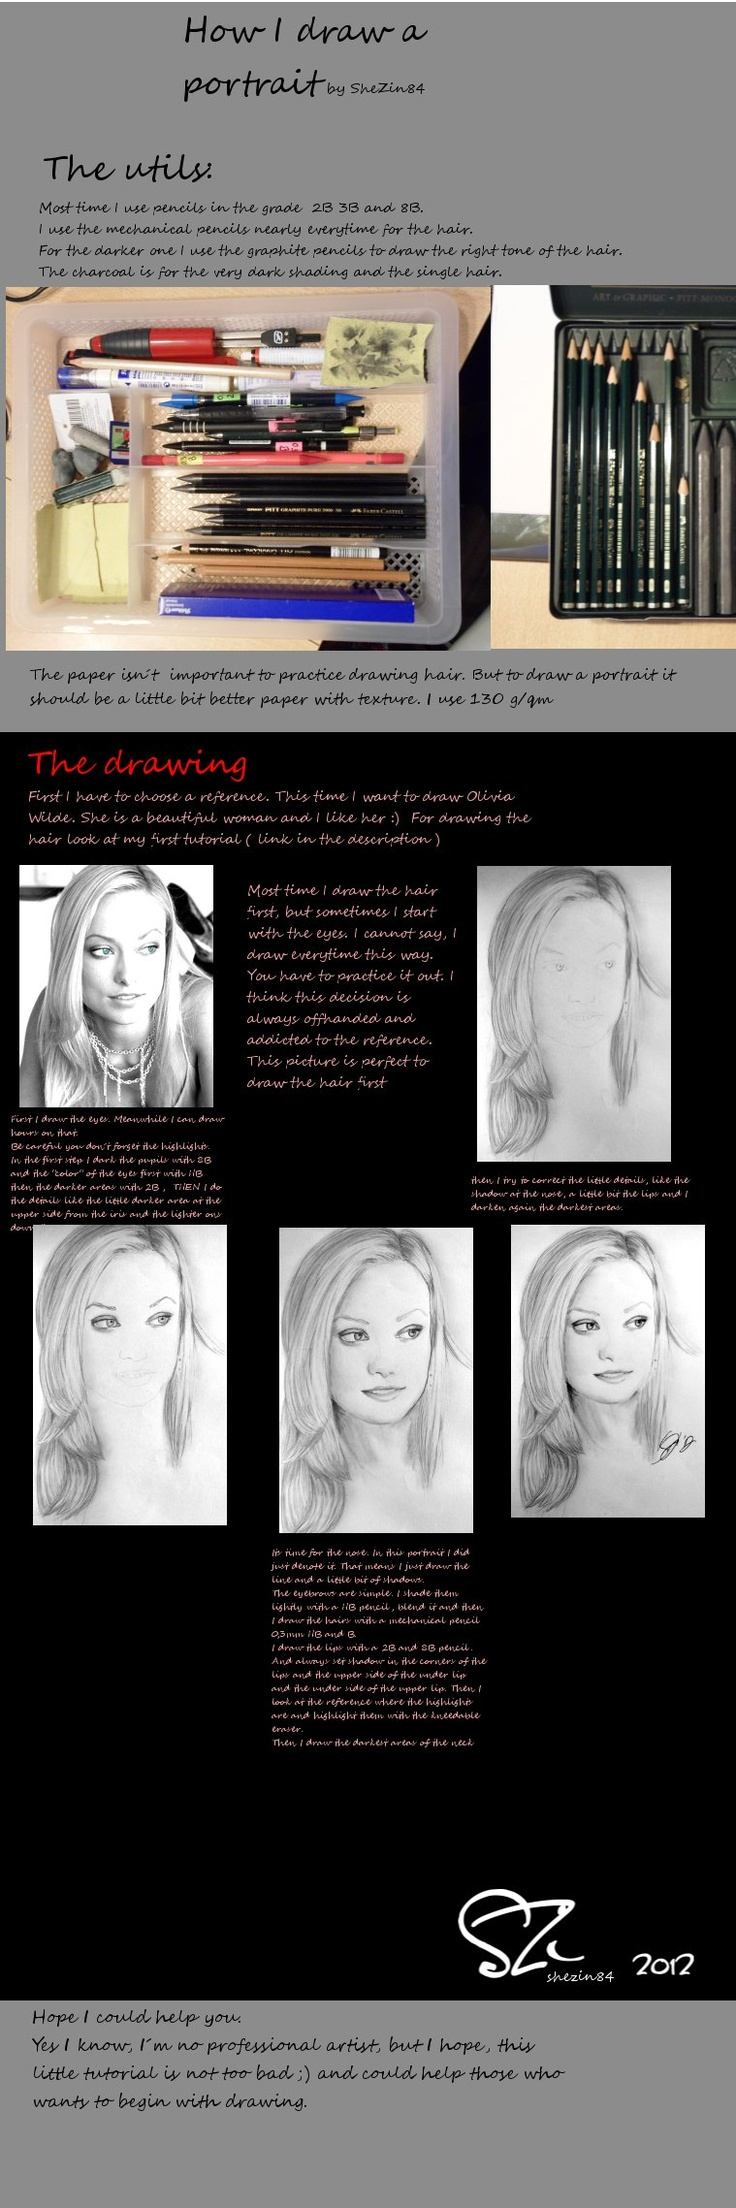 52 best portrait drawing painting tutorials how to tips images how i draw a face portrait tutorial by shezin84 on deviantart ccuart Images